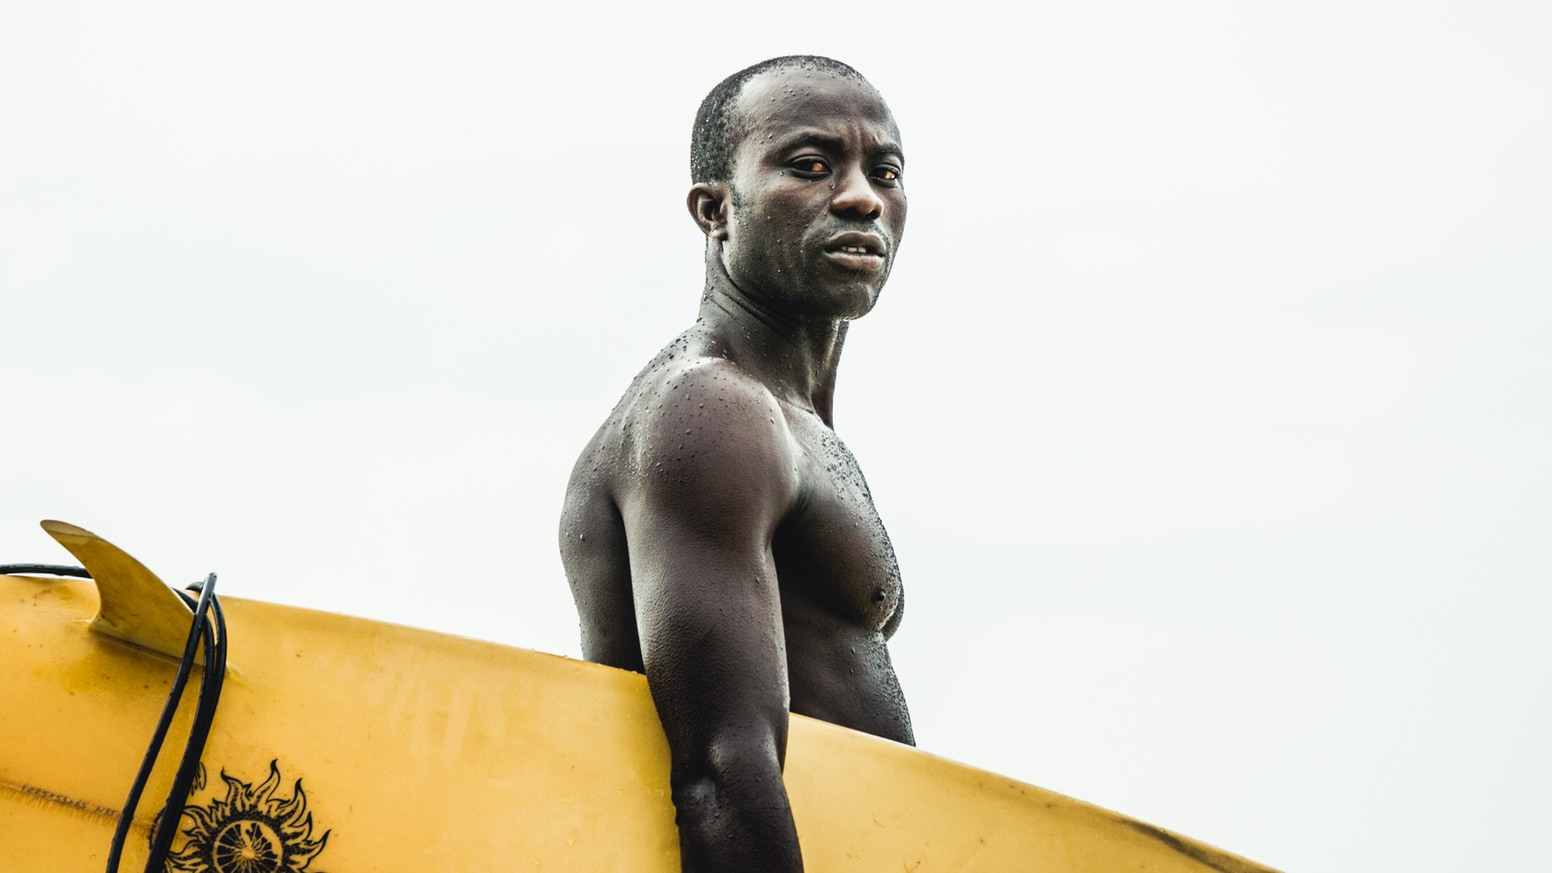 A comprehensive, 300 page, limited edition art book on contemporary African surf culture.